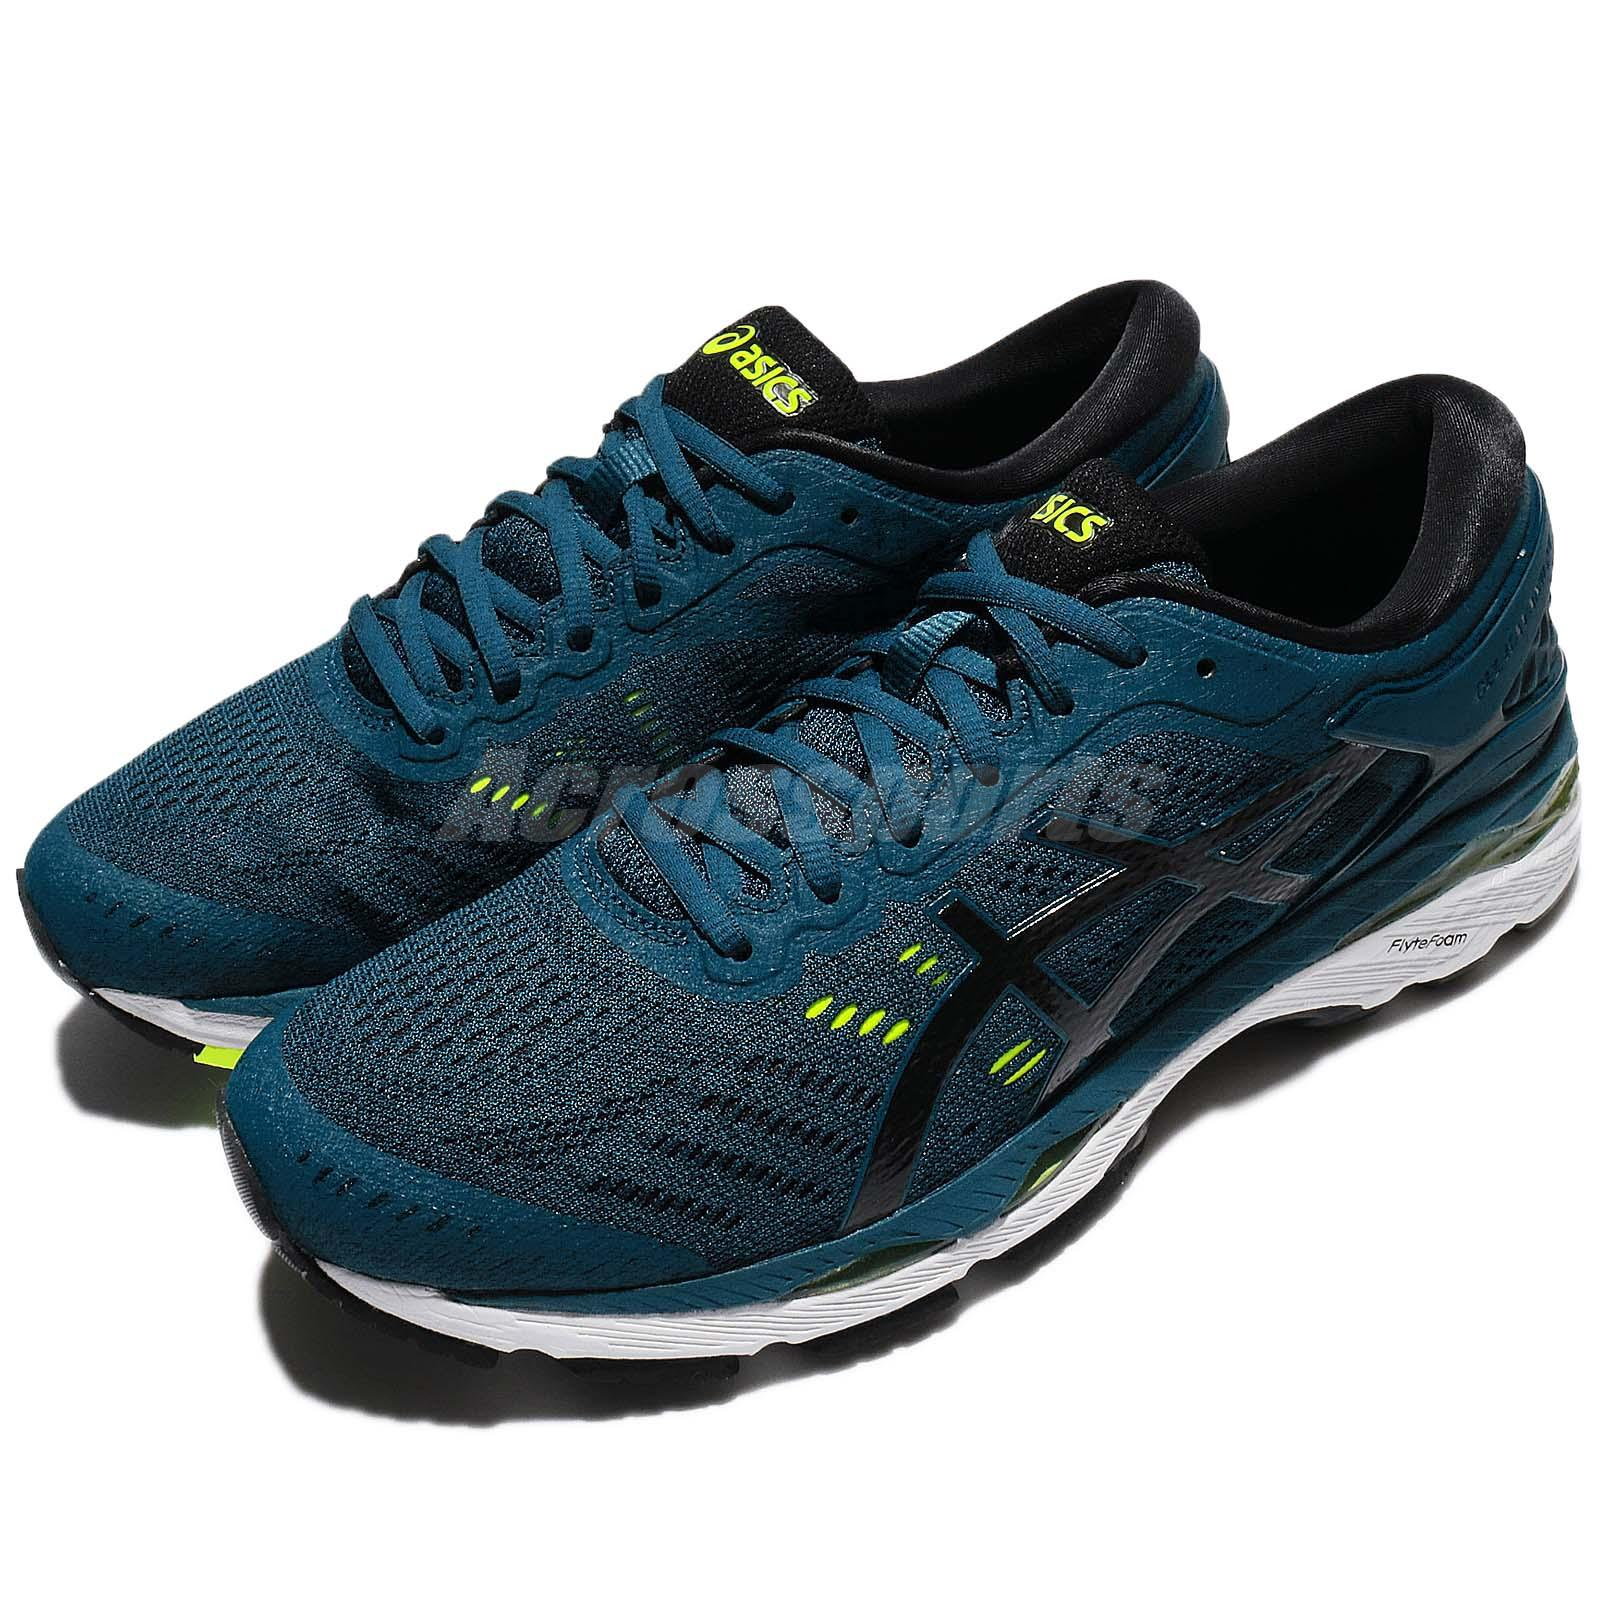 a72ba9dee14 Details about Asics Gel-Kayano 24 Ink Blue Black Yellow Men Running Shoes  Sneakers T749N-4590